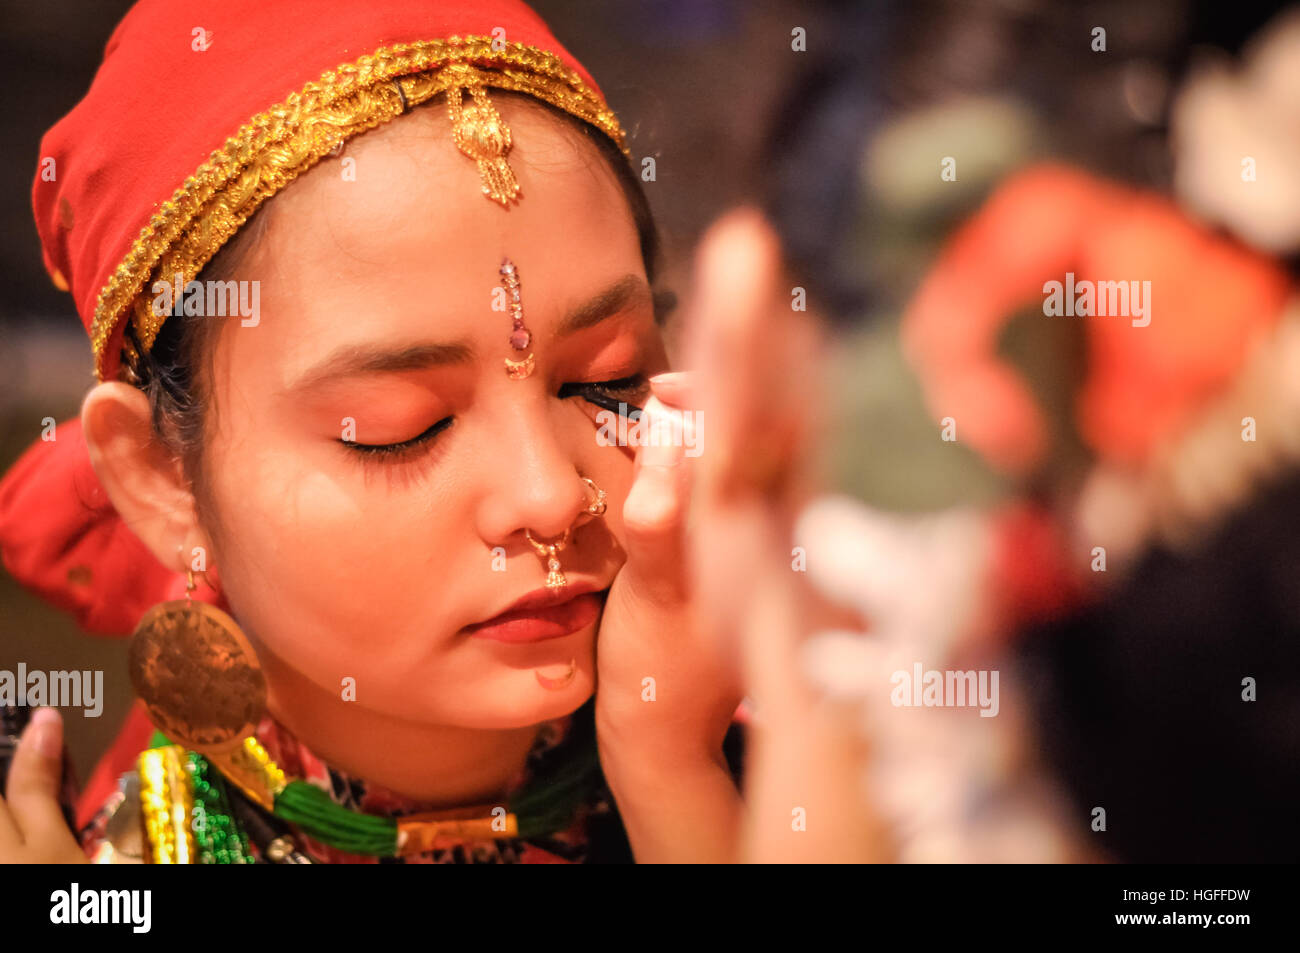 Guwahati, Assam - circa April 2012: Young native girl with red headcloth and earrings gets her eye lined by eye - Stock Image